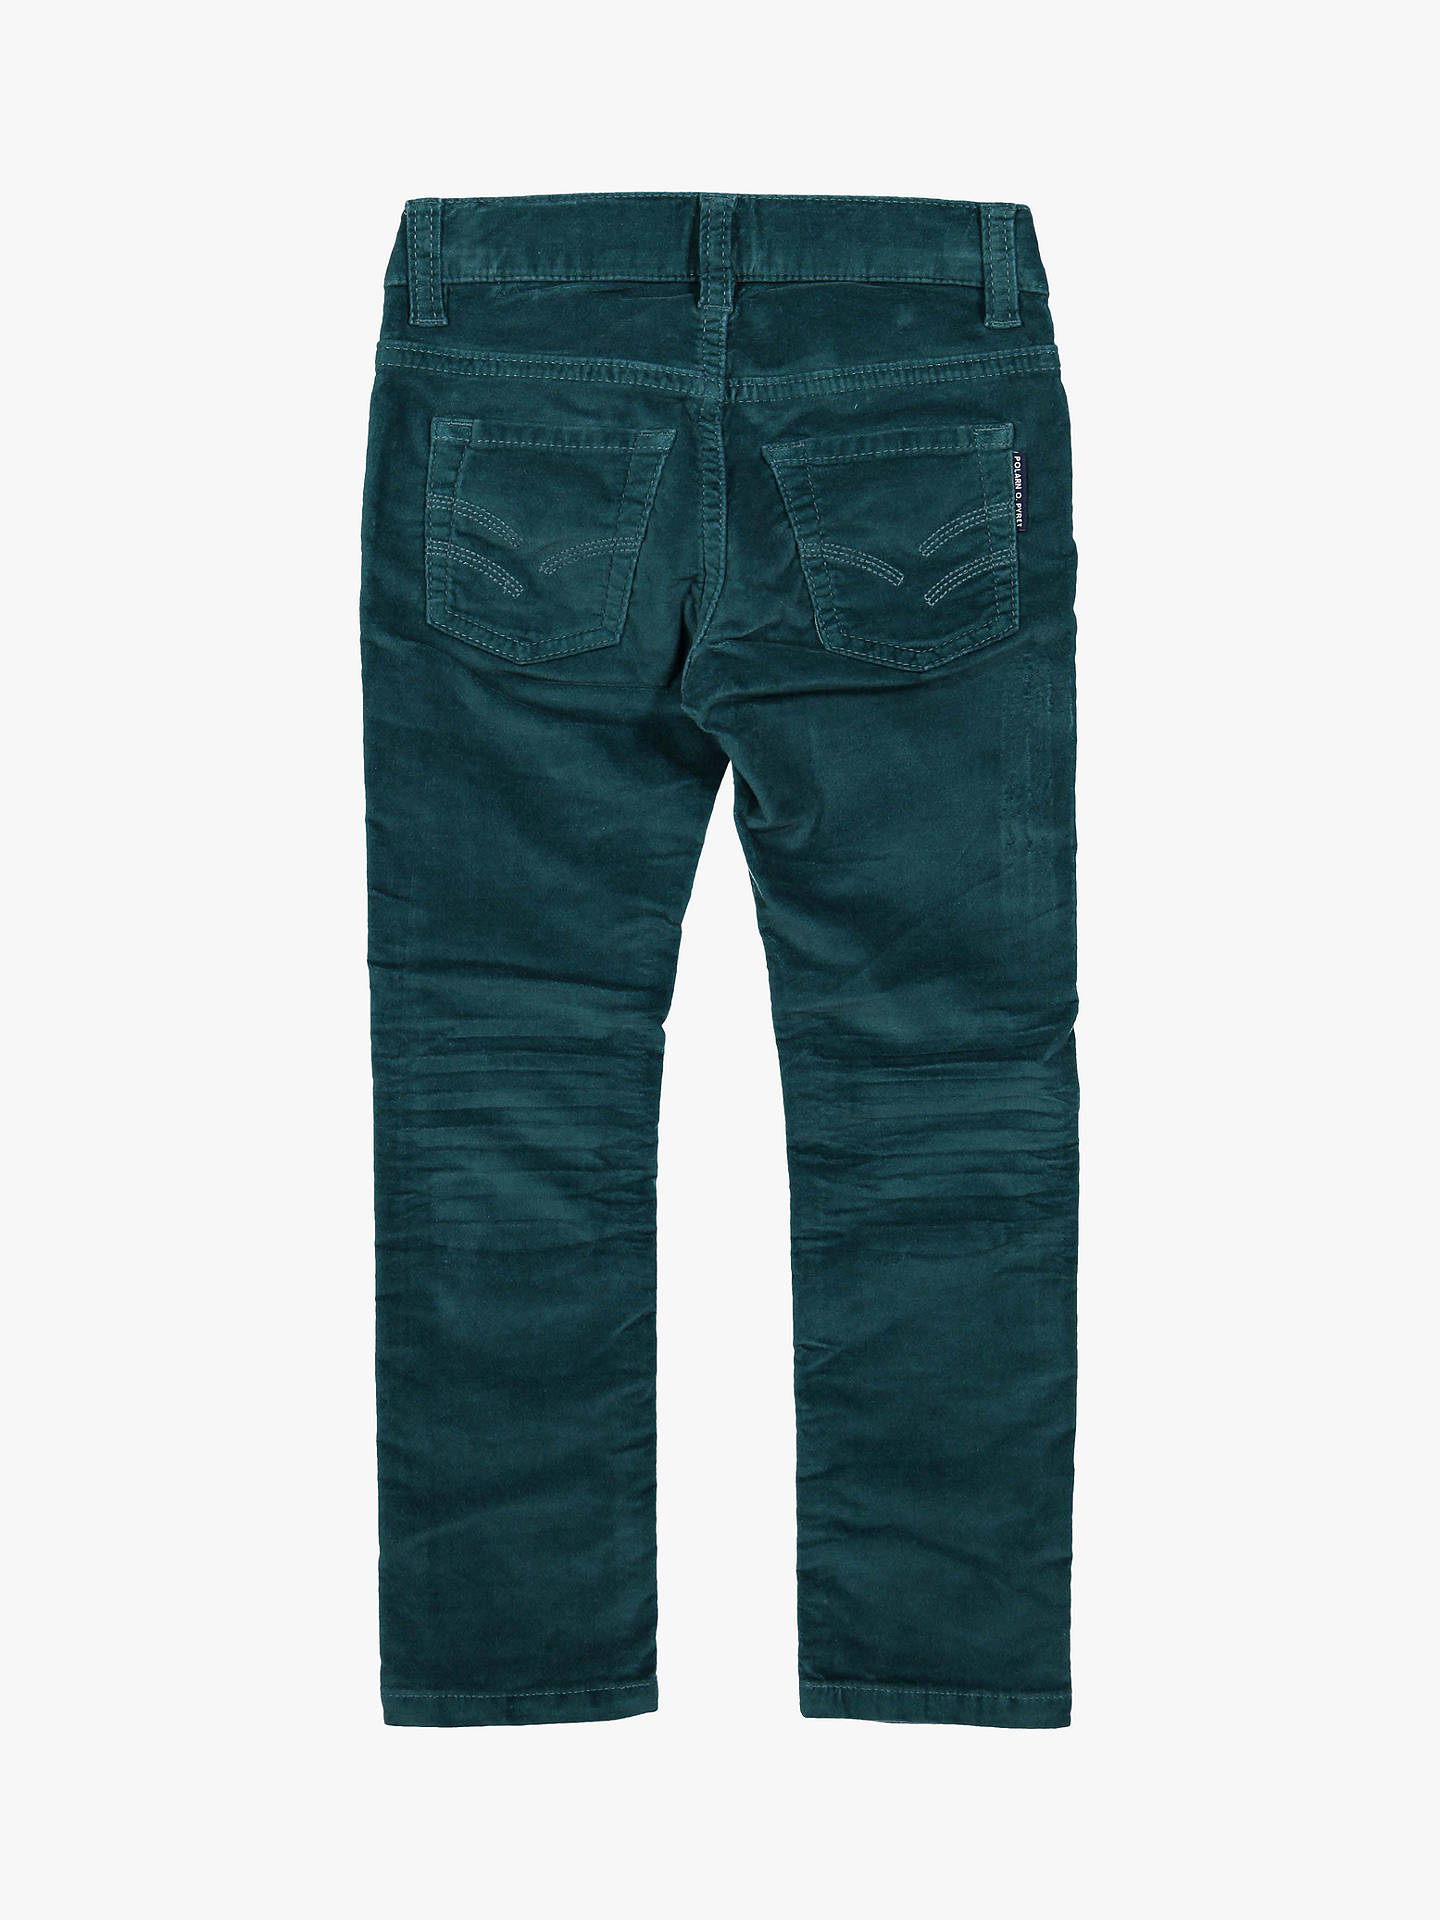 Buy Polarn O. Pyret Children's Velvet Trousers, Green, 10-11 years Online at johnlewis.com